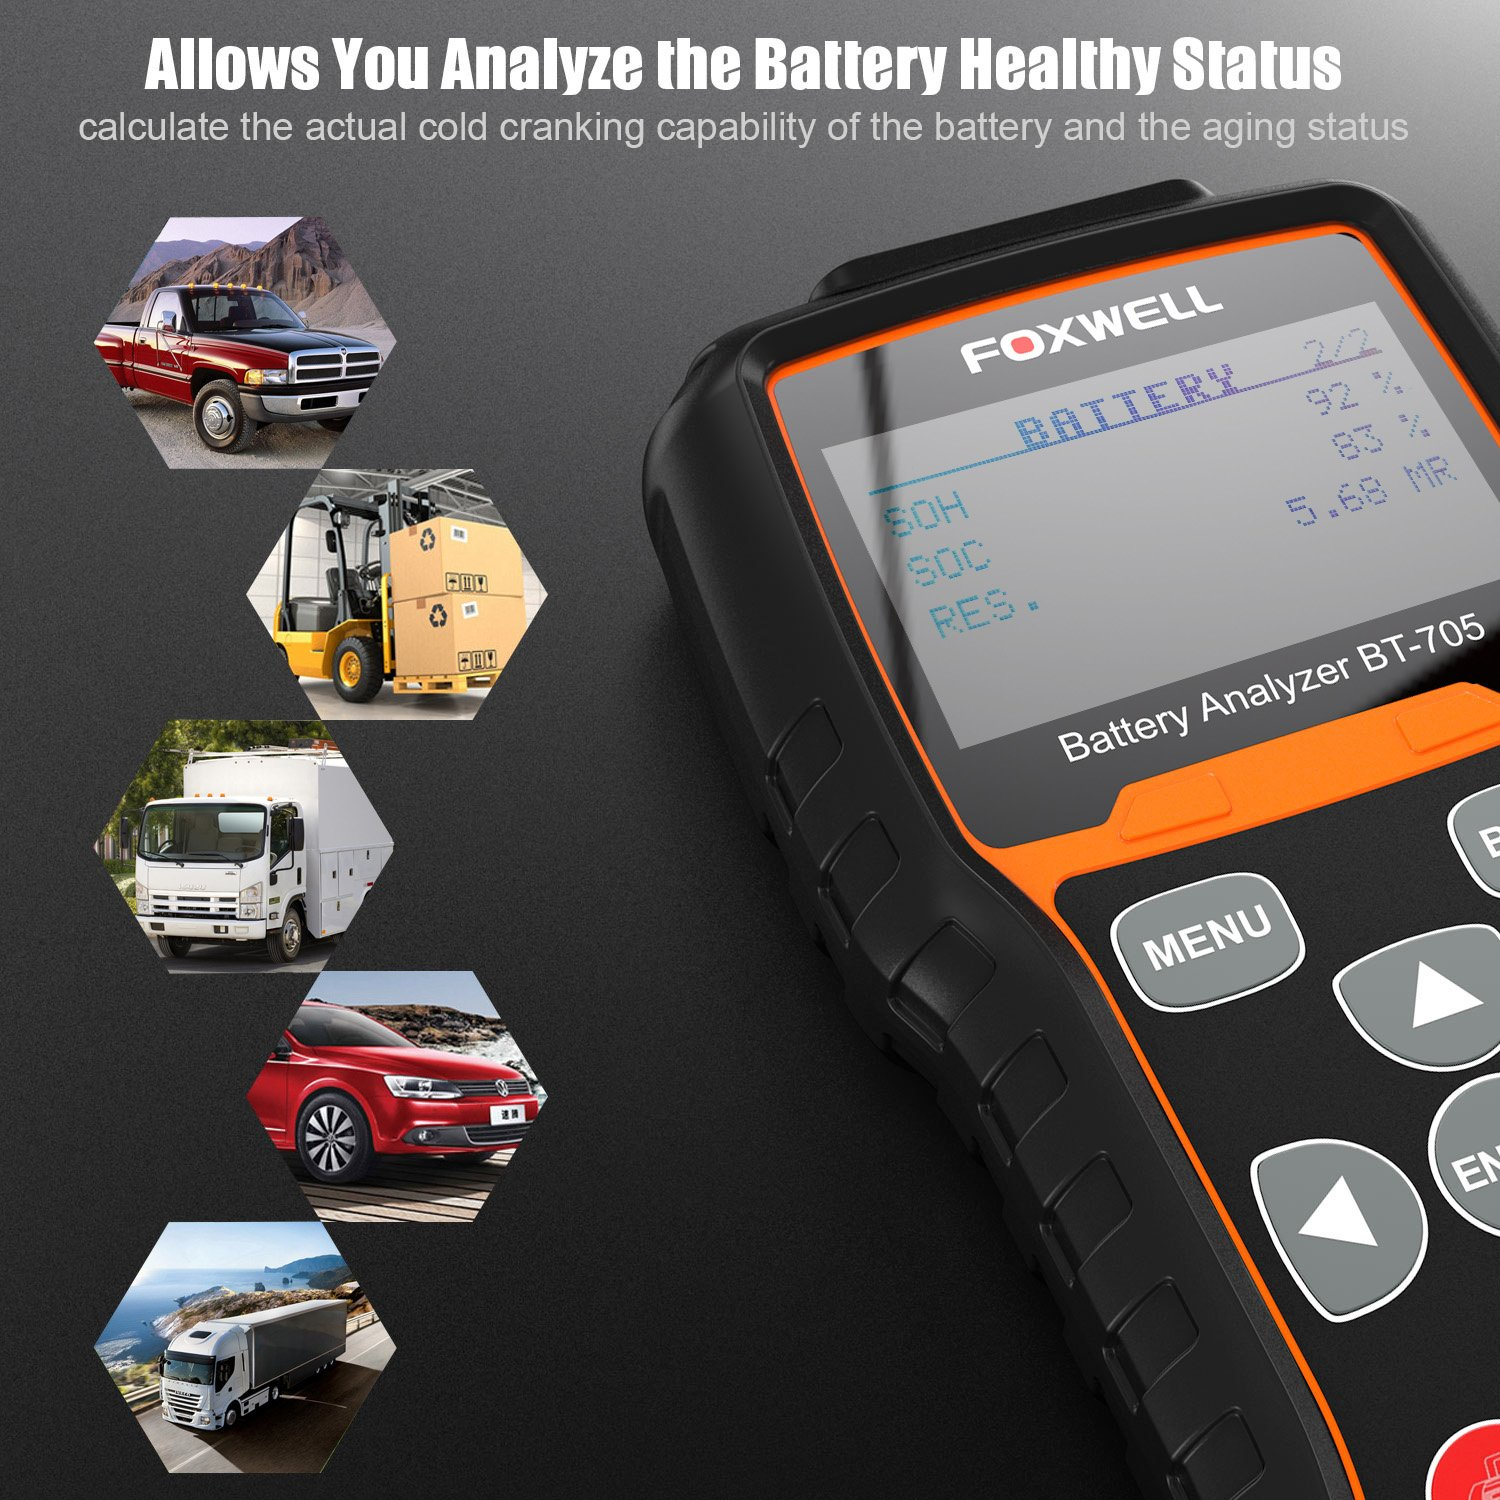 FOXWELL Battery Tester BT705 Automotive 100-2000 CCA Battery Load Tester 12V 24V Car Cranking and Charging System Test Tool Digital Battery Analyzer for Cars and Heavy Duty Trucks by FOXWELL (Image #4)